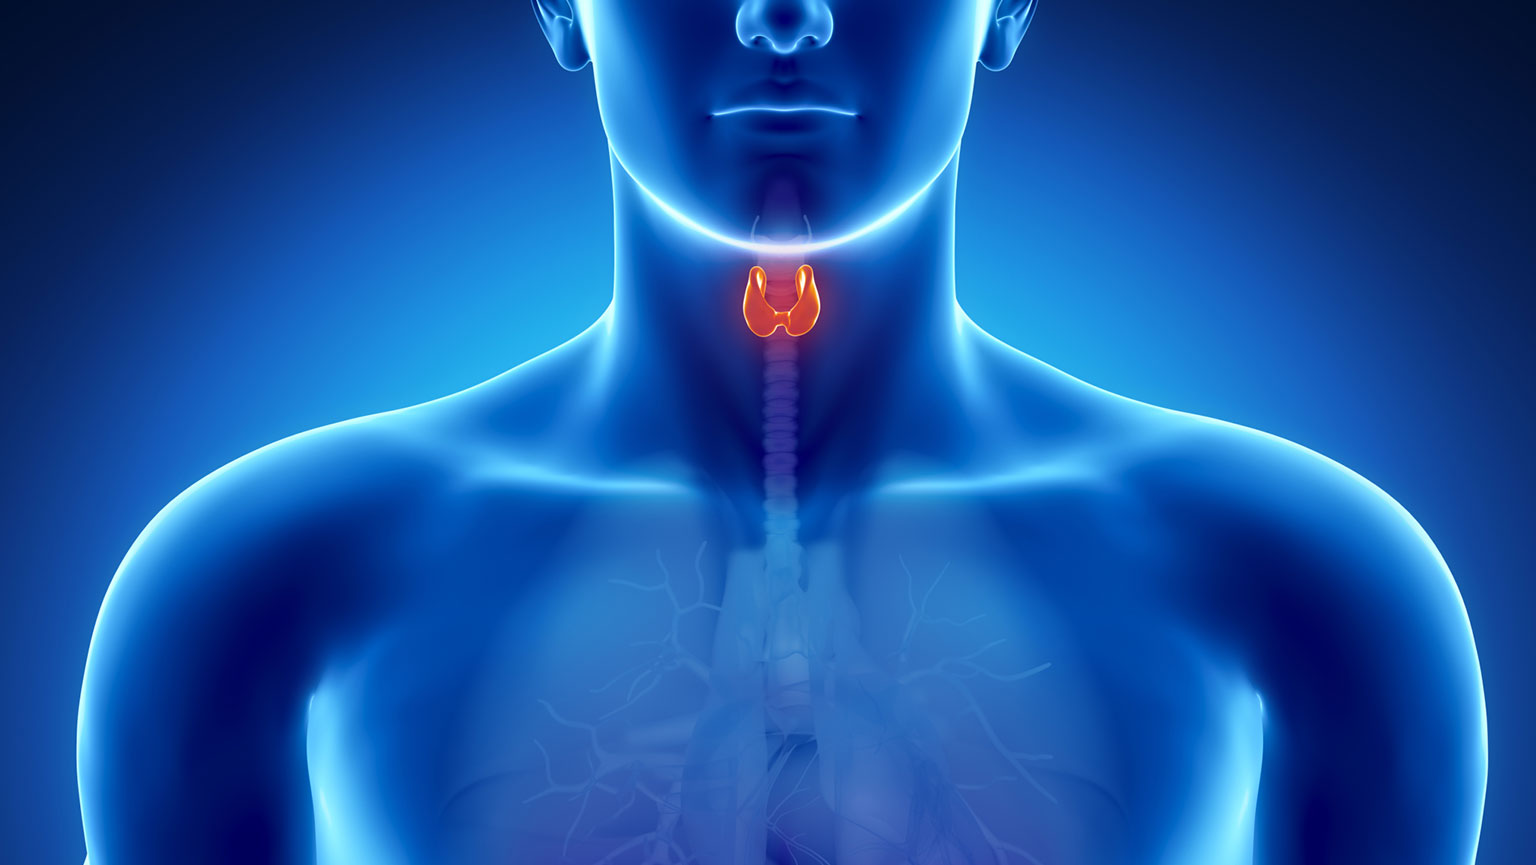 Endocrine System—Thyroid and Parathyroid Glands